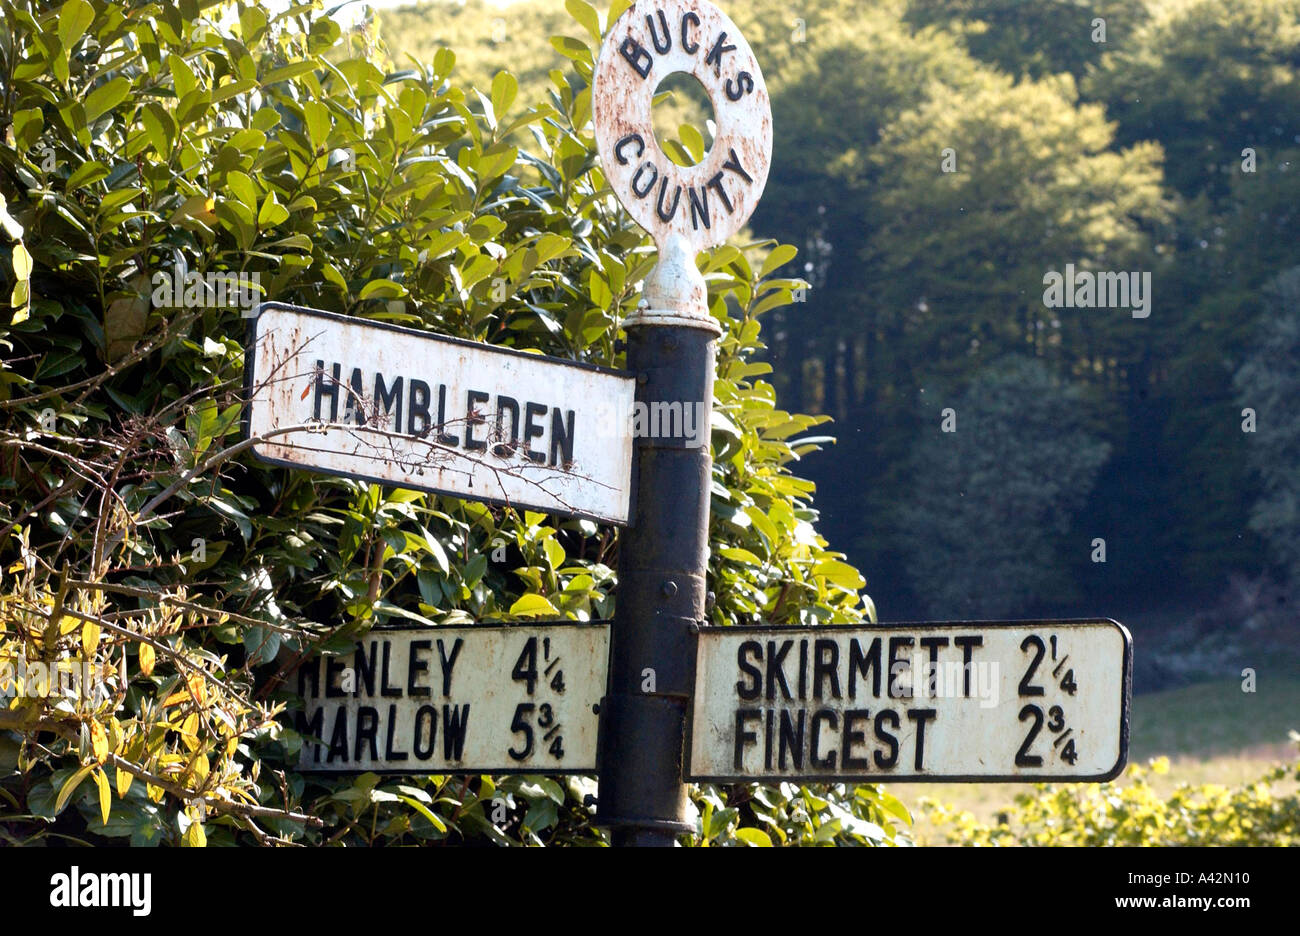 Sign pointing along a country lane in Buckinghamshire towards Hambleden village. - Stock Image